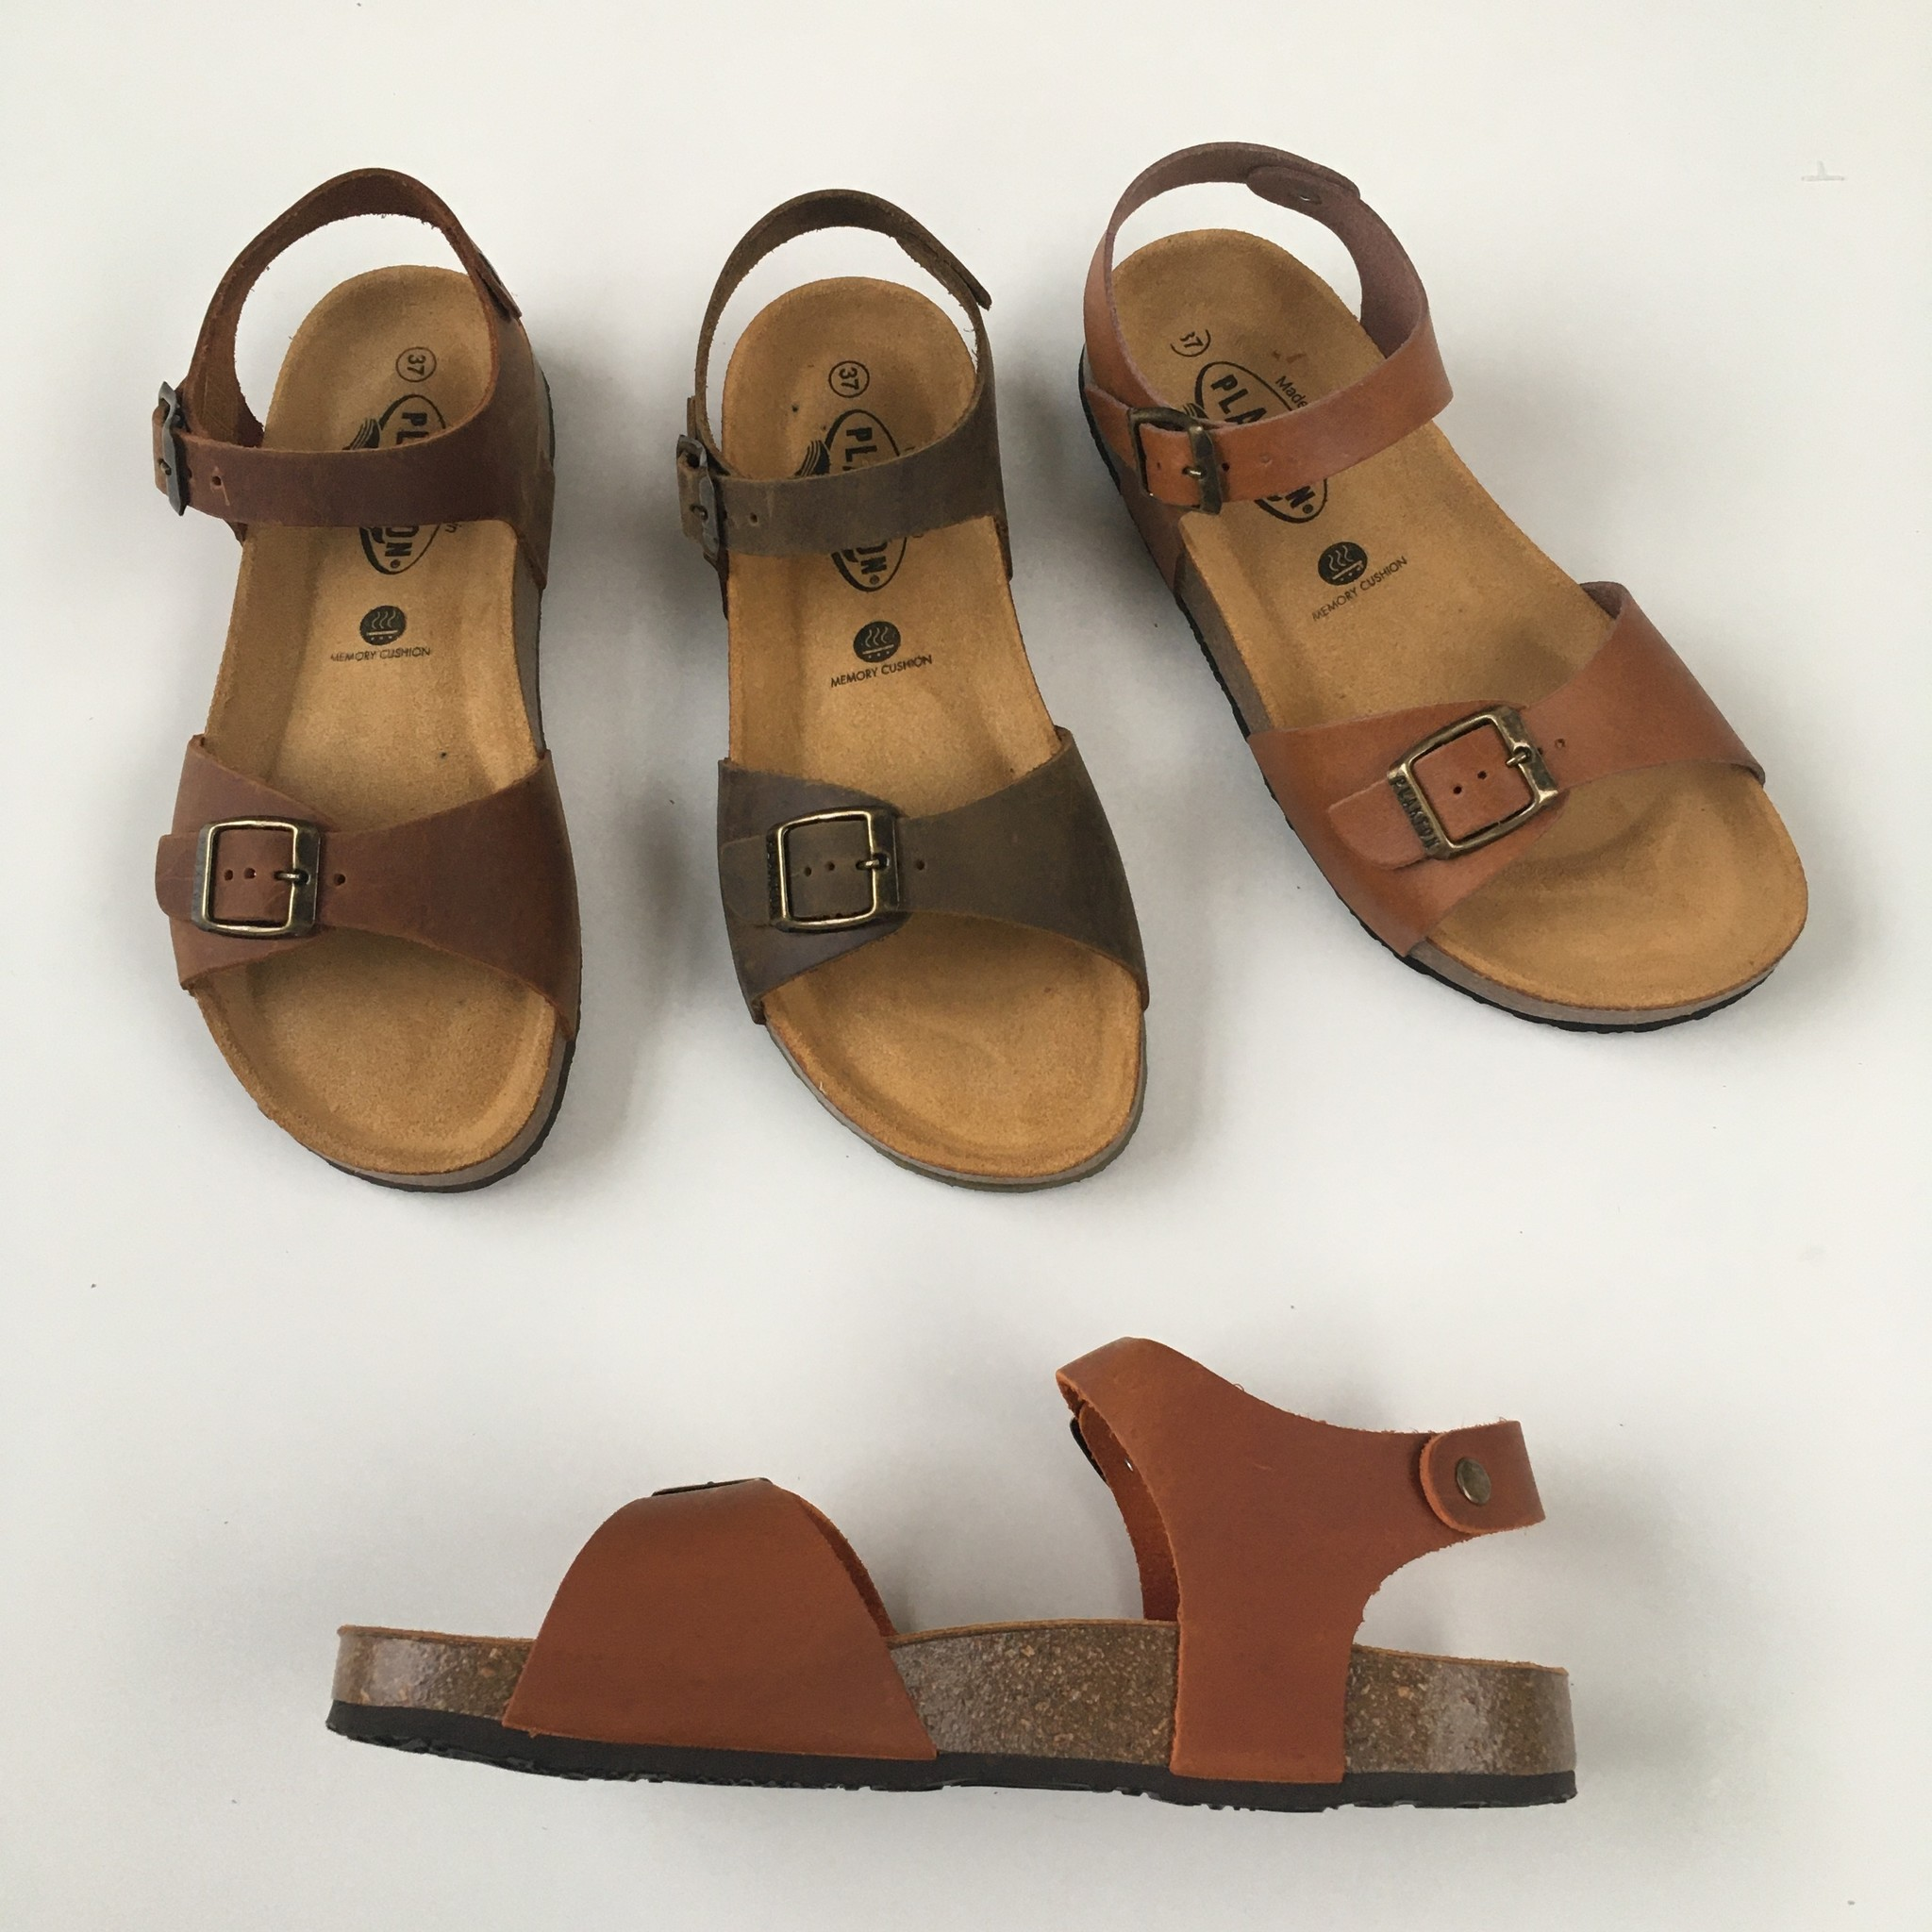 PLAKTON SANDALS leather cork sandal LOUIS teens & ladies - roughened leather mat - clay orange - 35 to 40